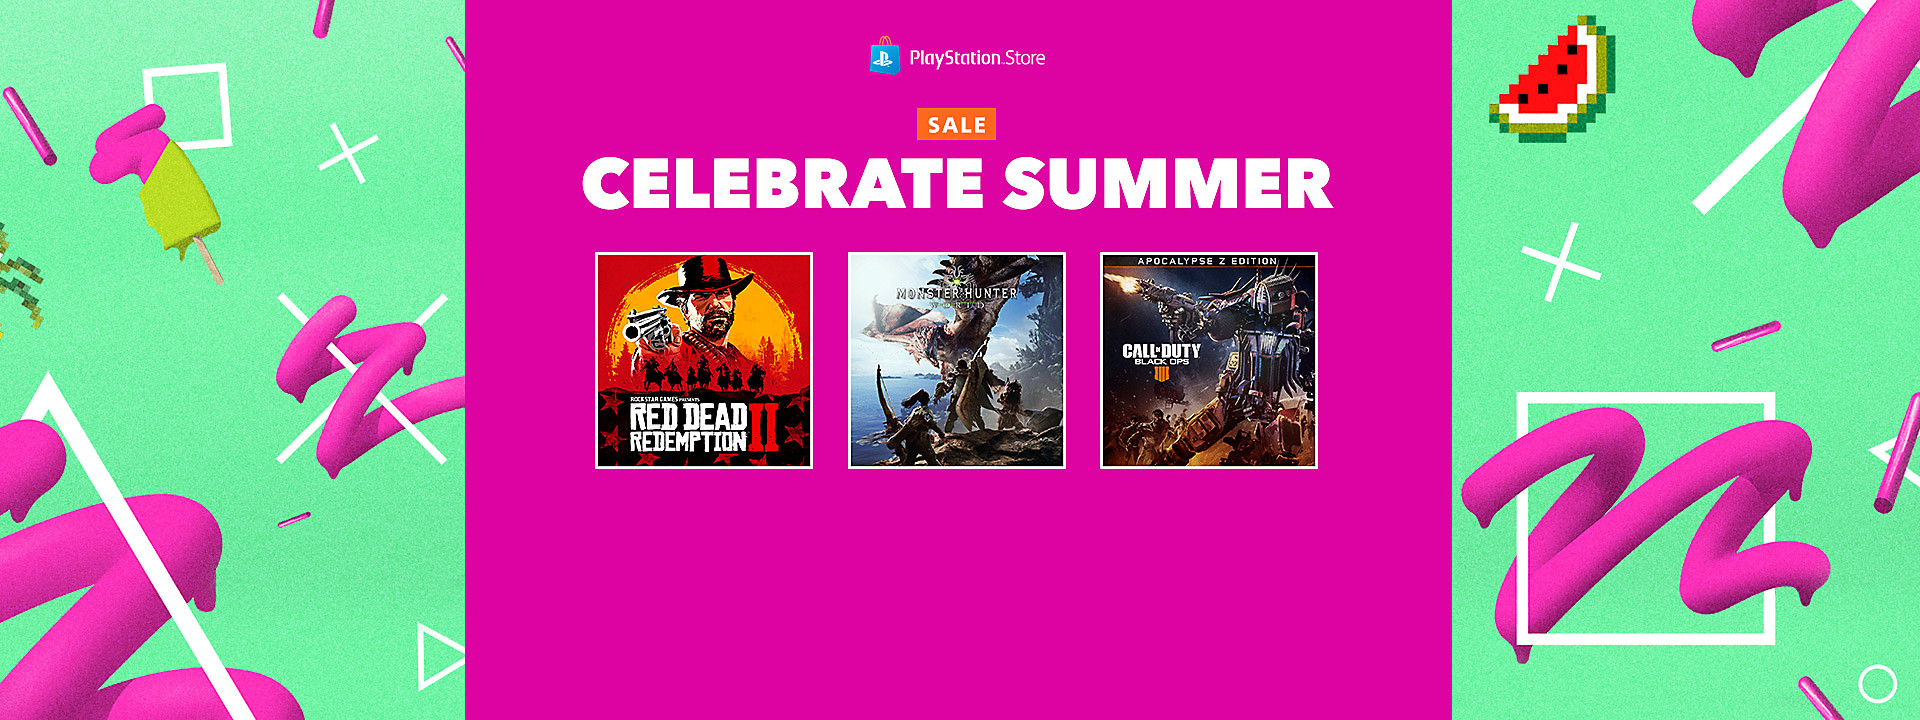 PlayStation Store Summer Sale - July 23 - August 20